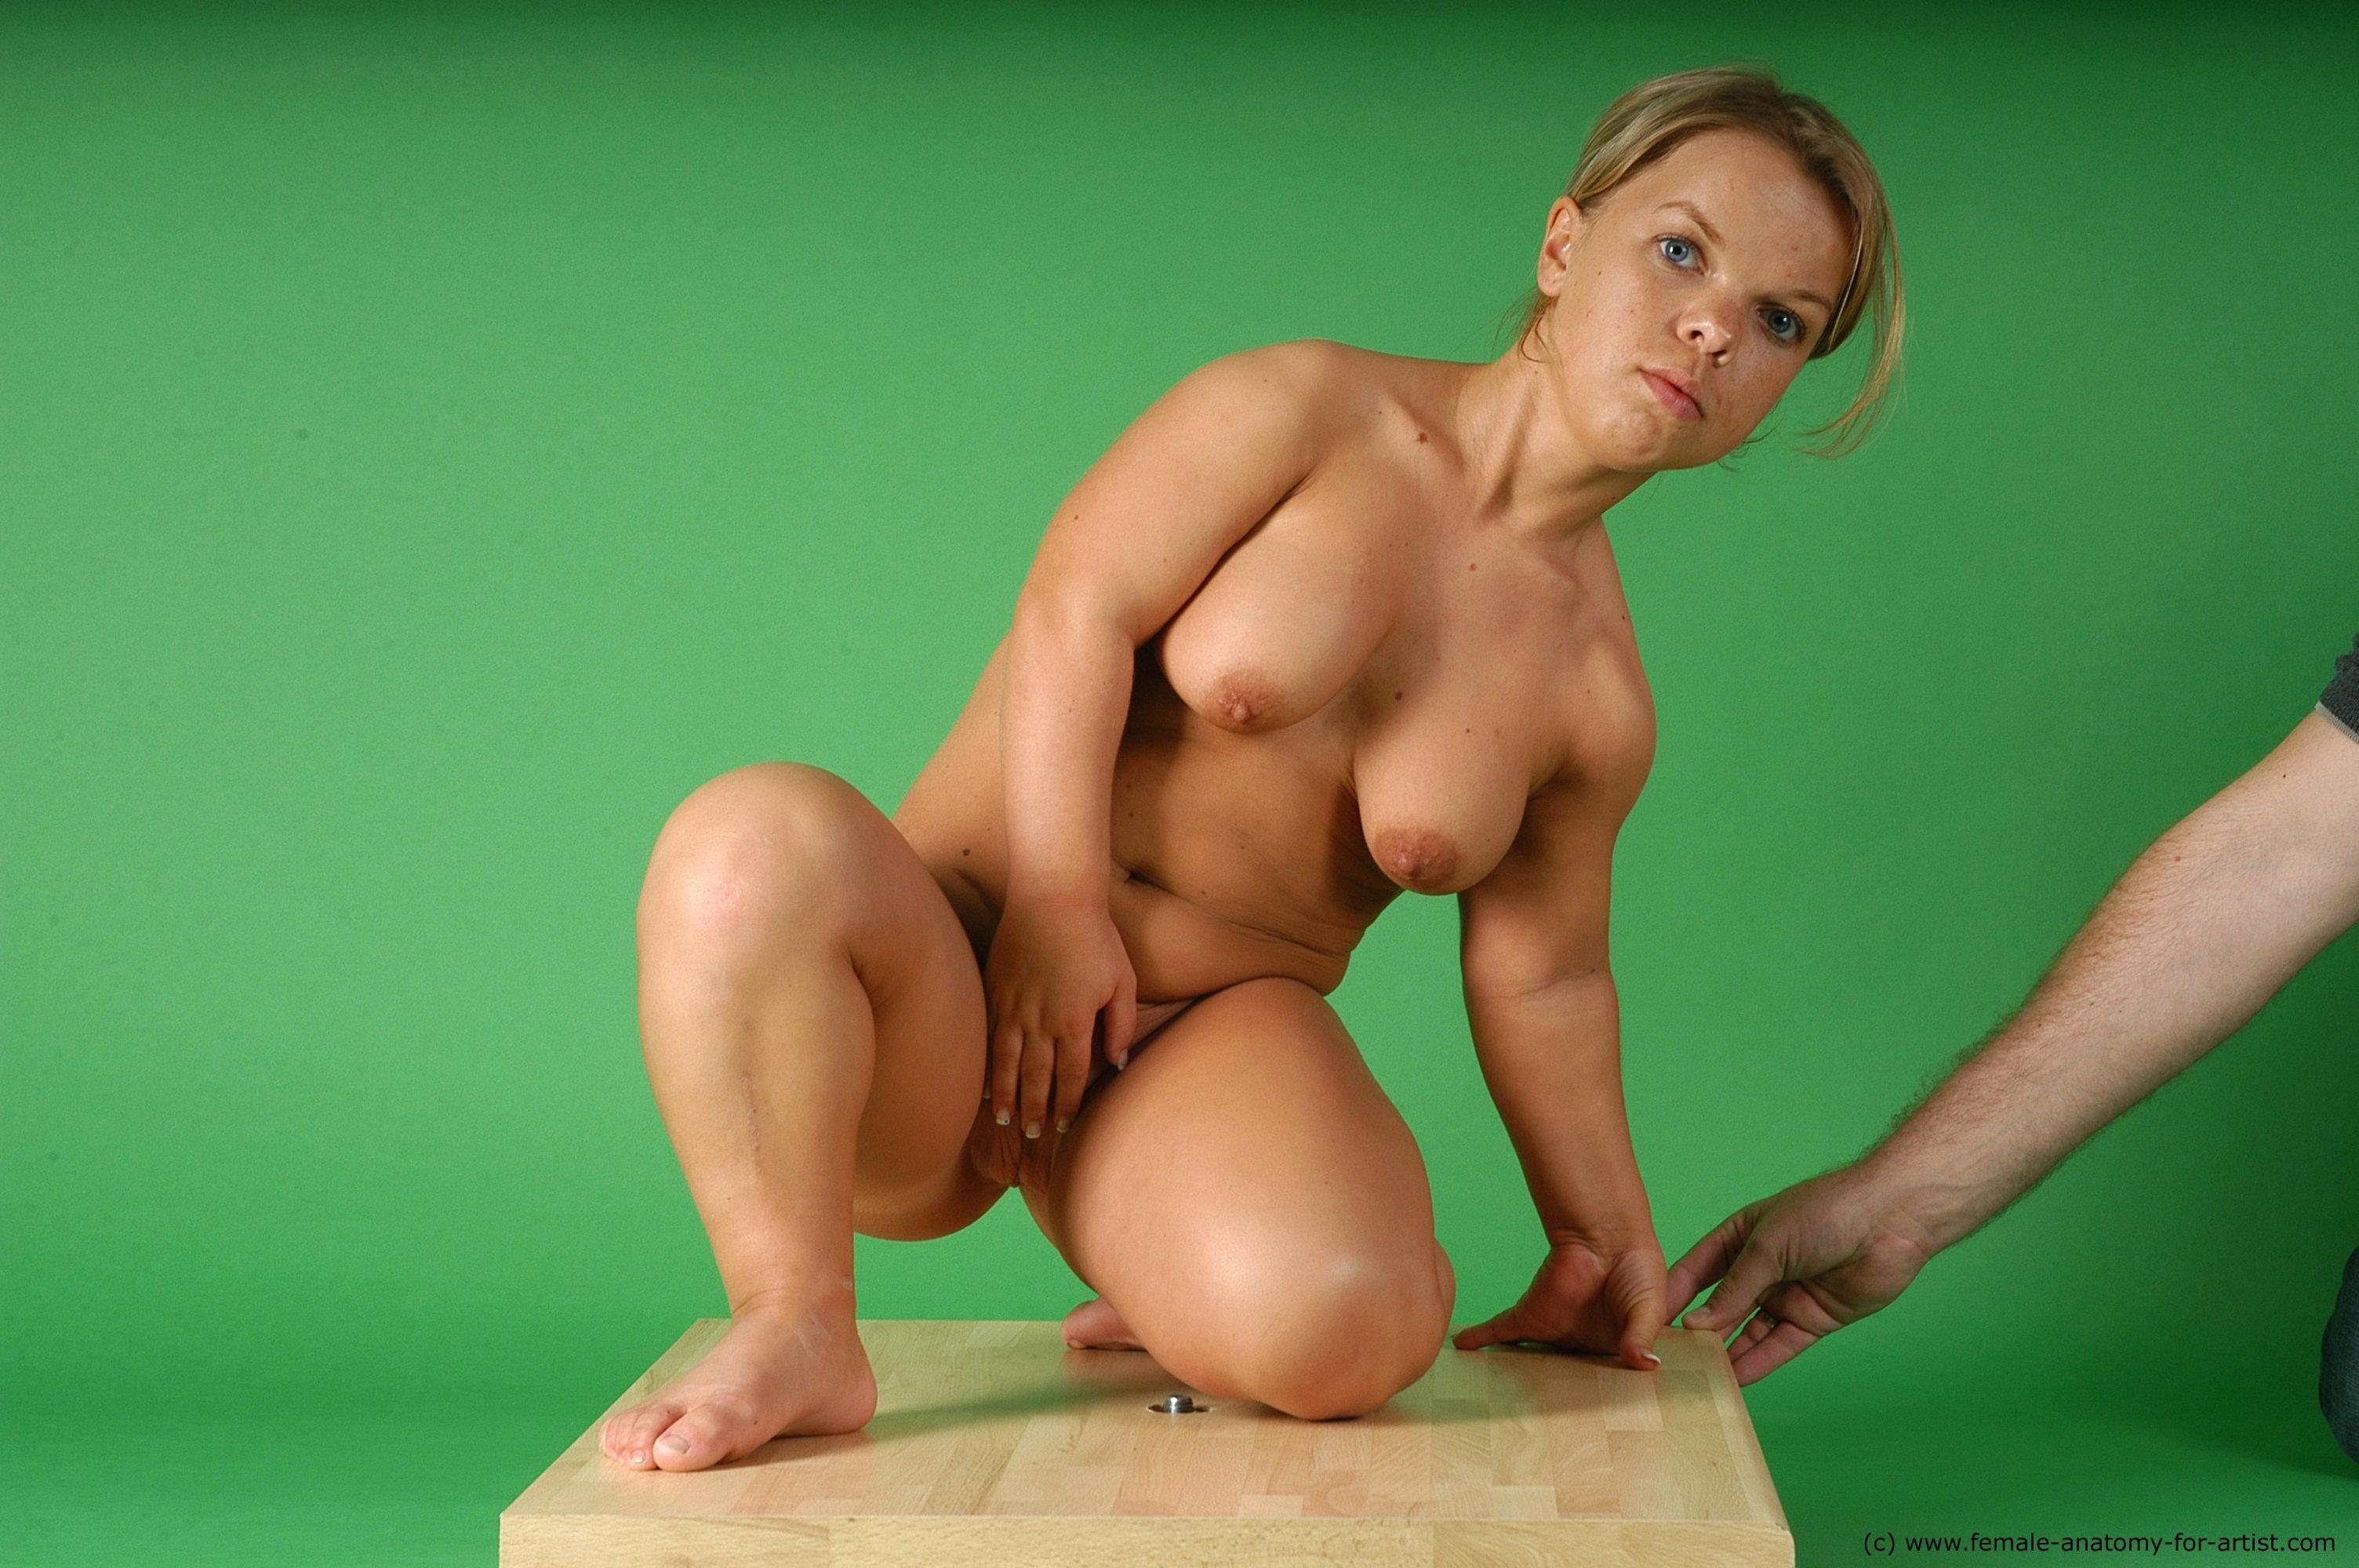 Dvd movies pantyhose video